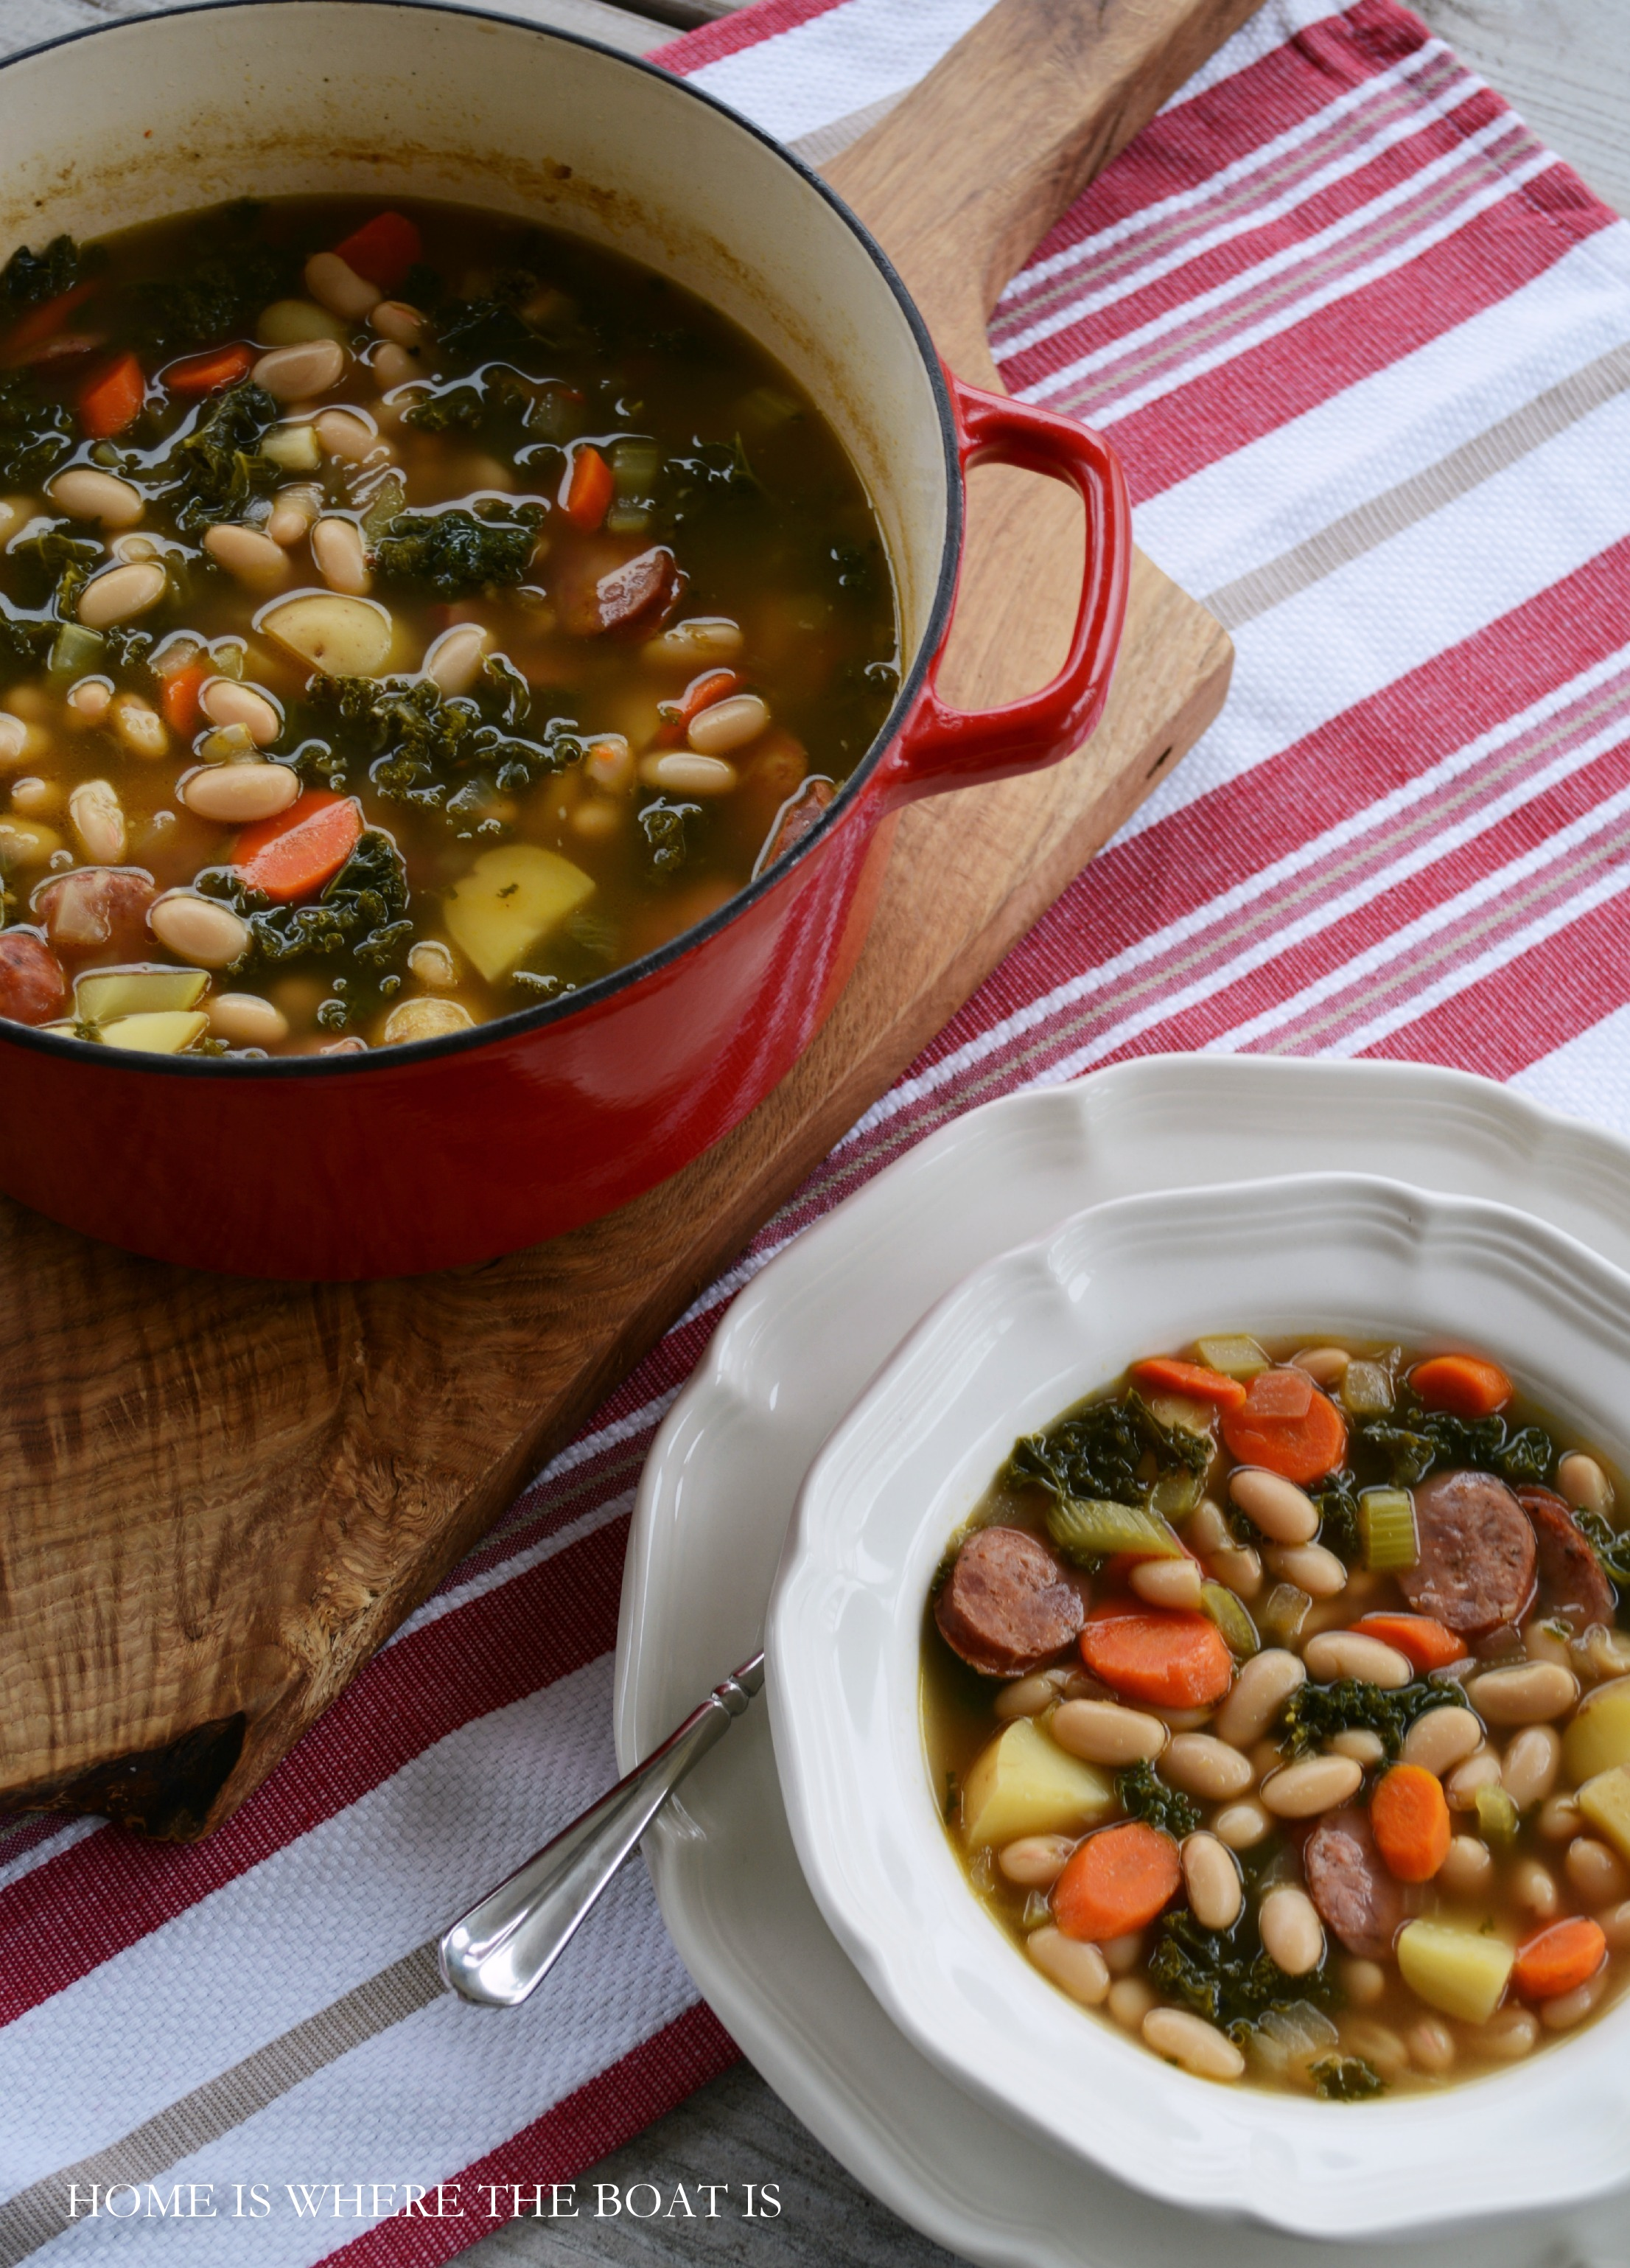 A Hearty Winter SoupSausage, Kale and White Bean SoupHome is